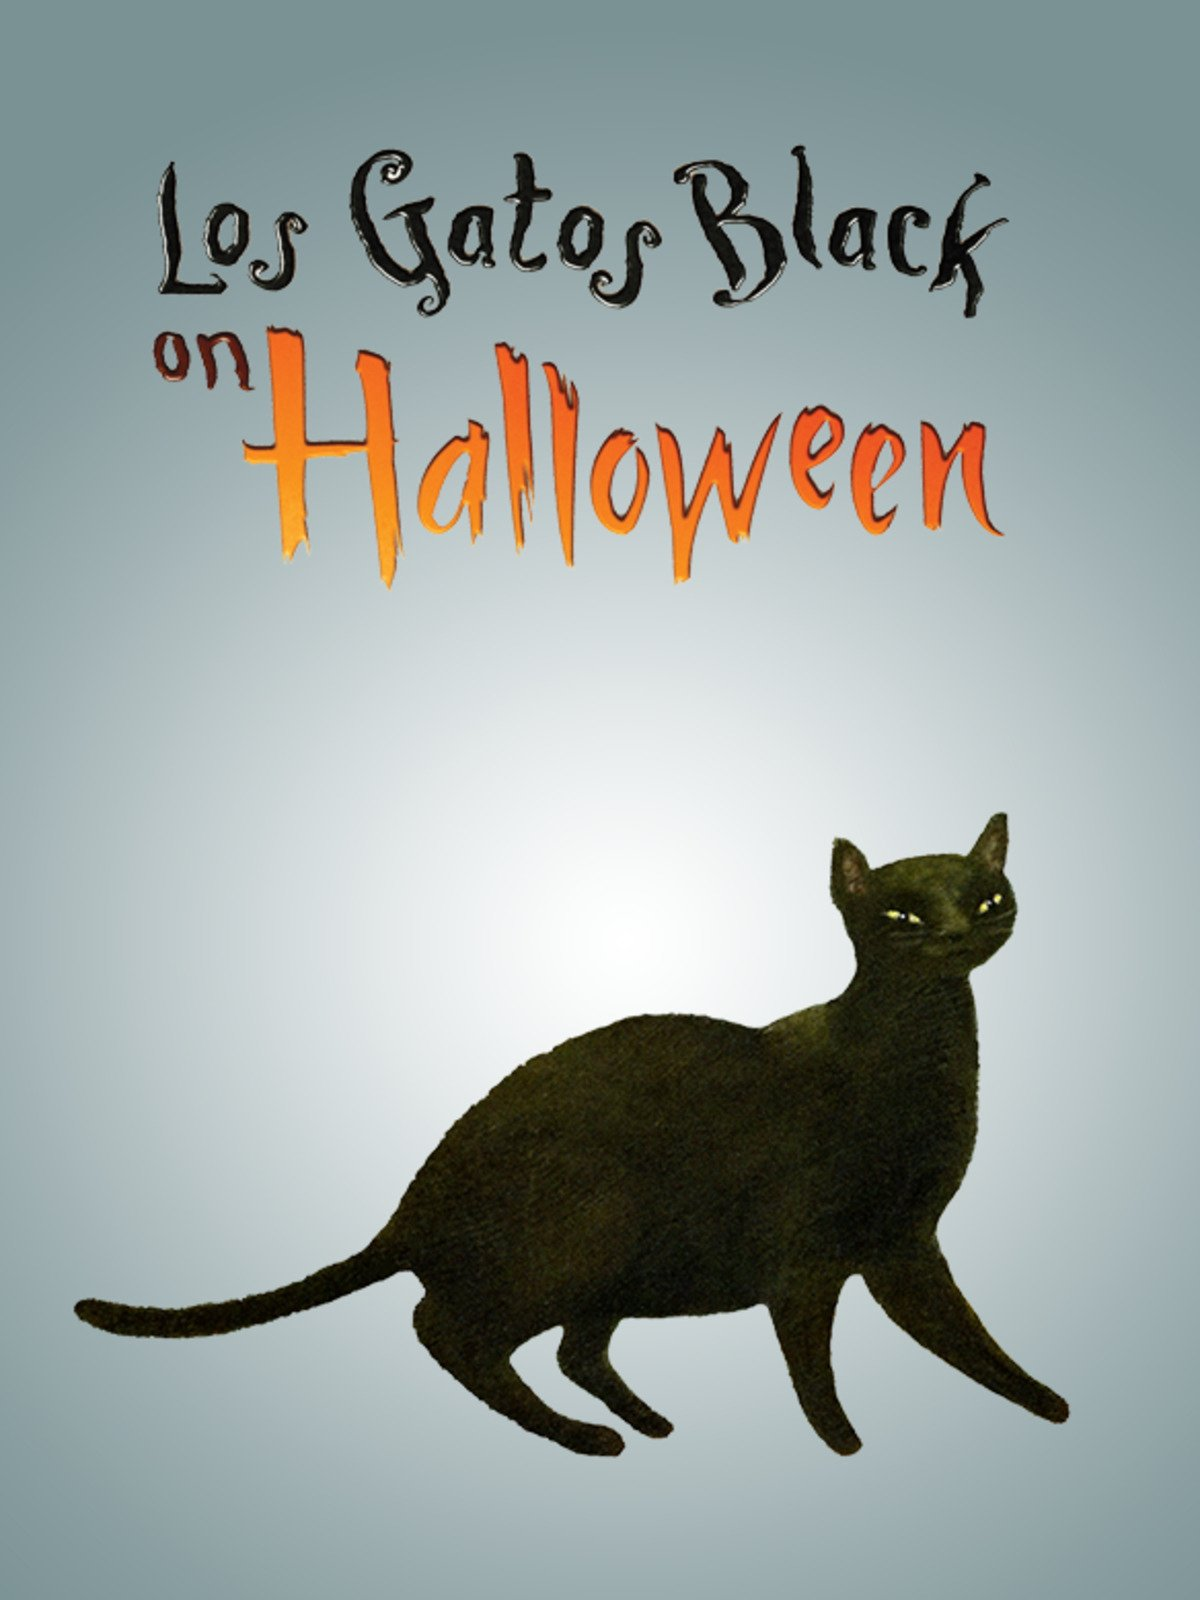 Amazon.com: Los Gatos Black on Halloween: Maria Conchita Alonso, Otmaro Ruiz, Kris Tercek, Ed Mironiuk